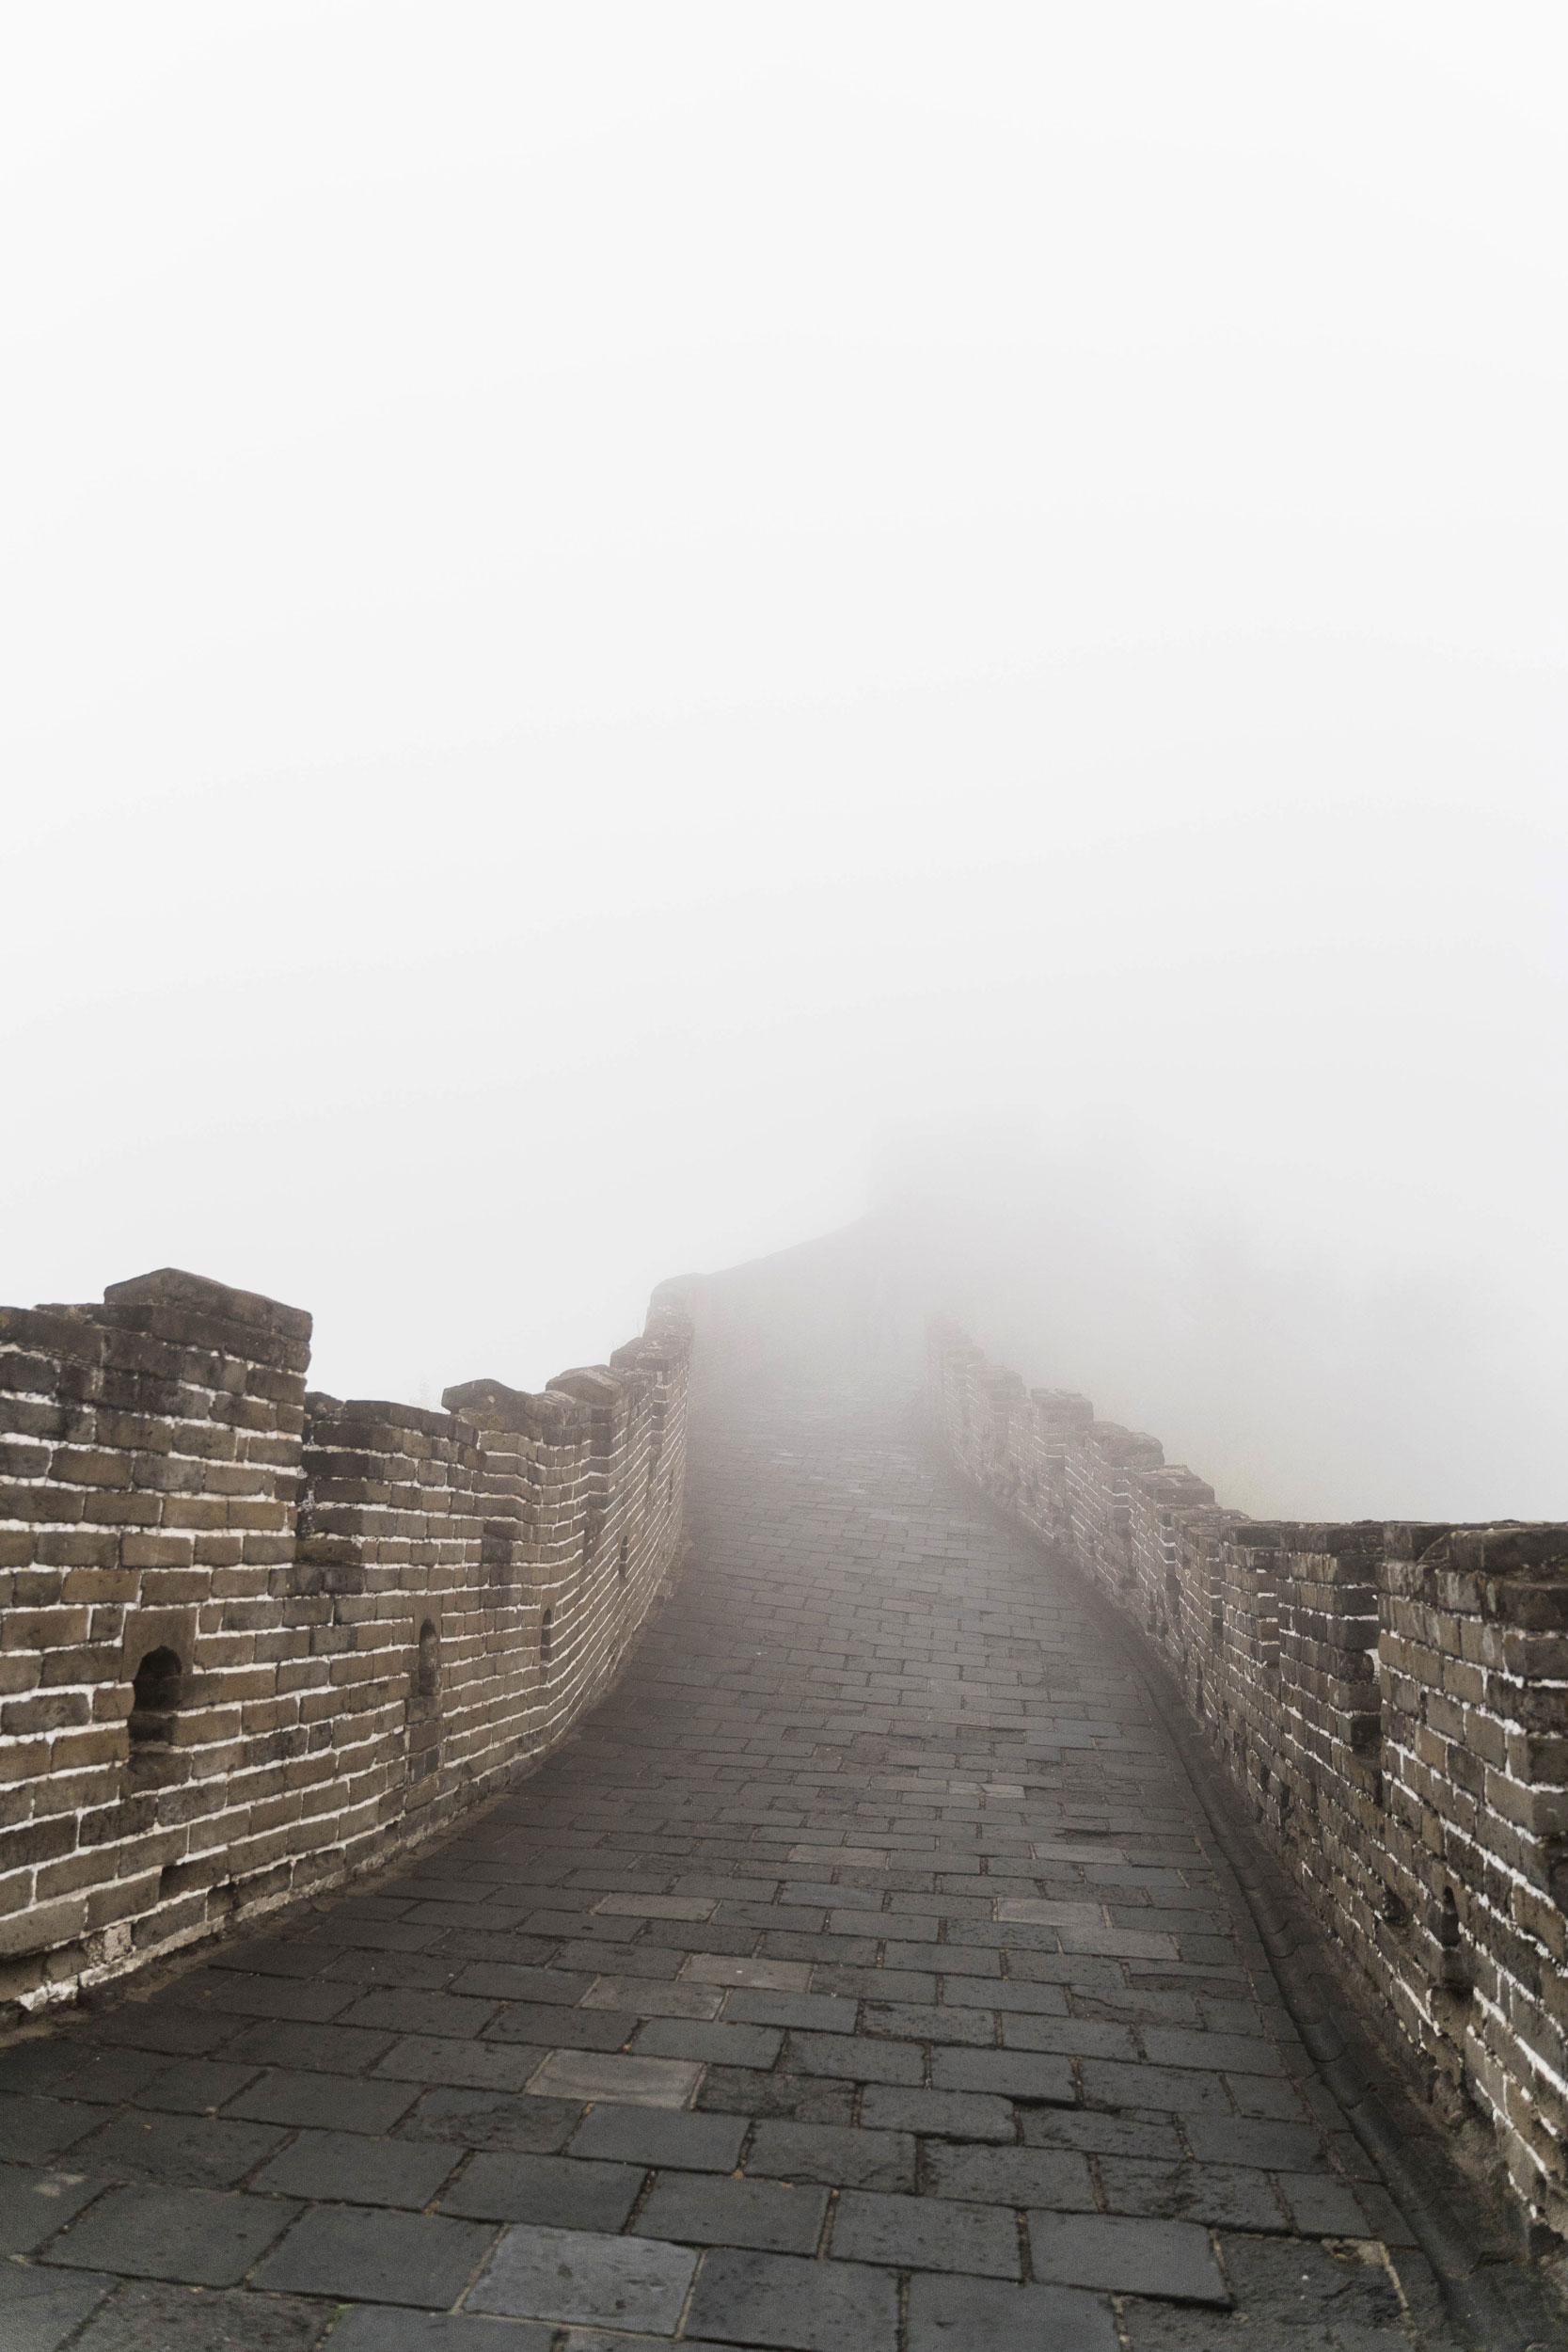 The Great Wall at Mutianyu on a foggy morning